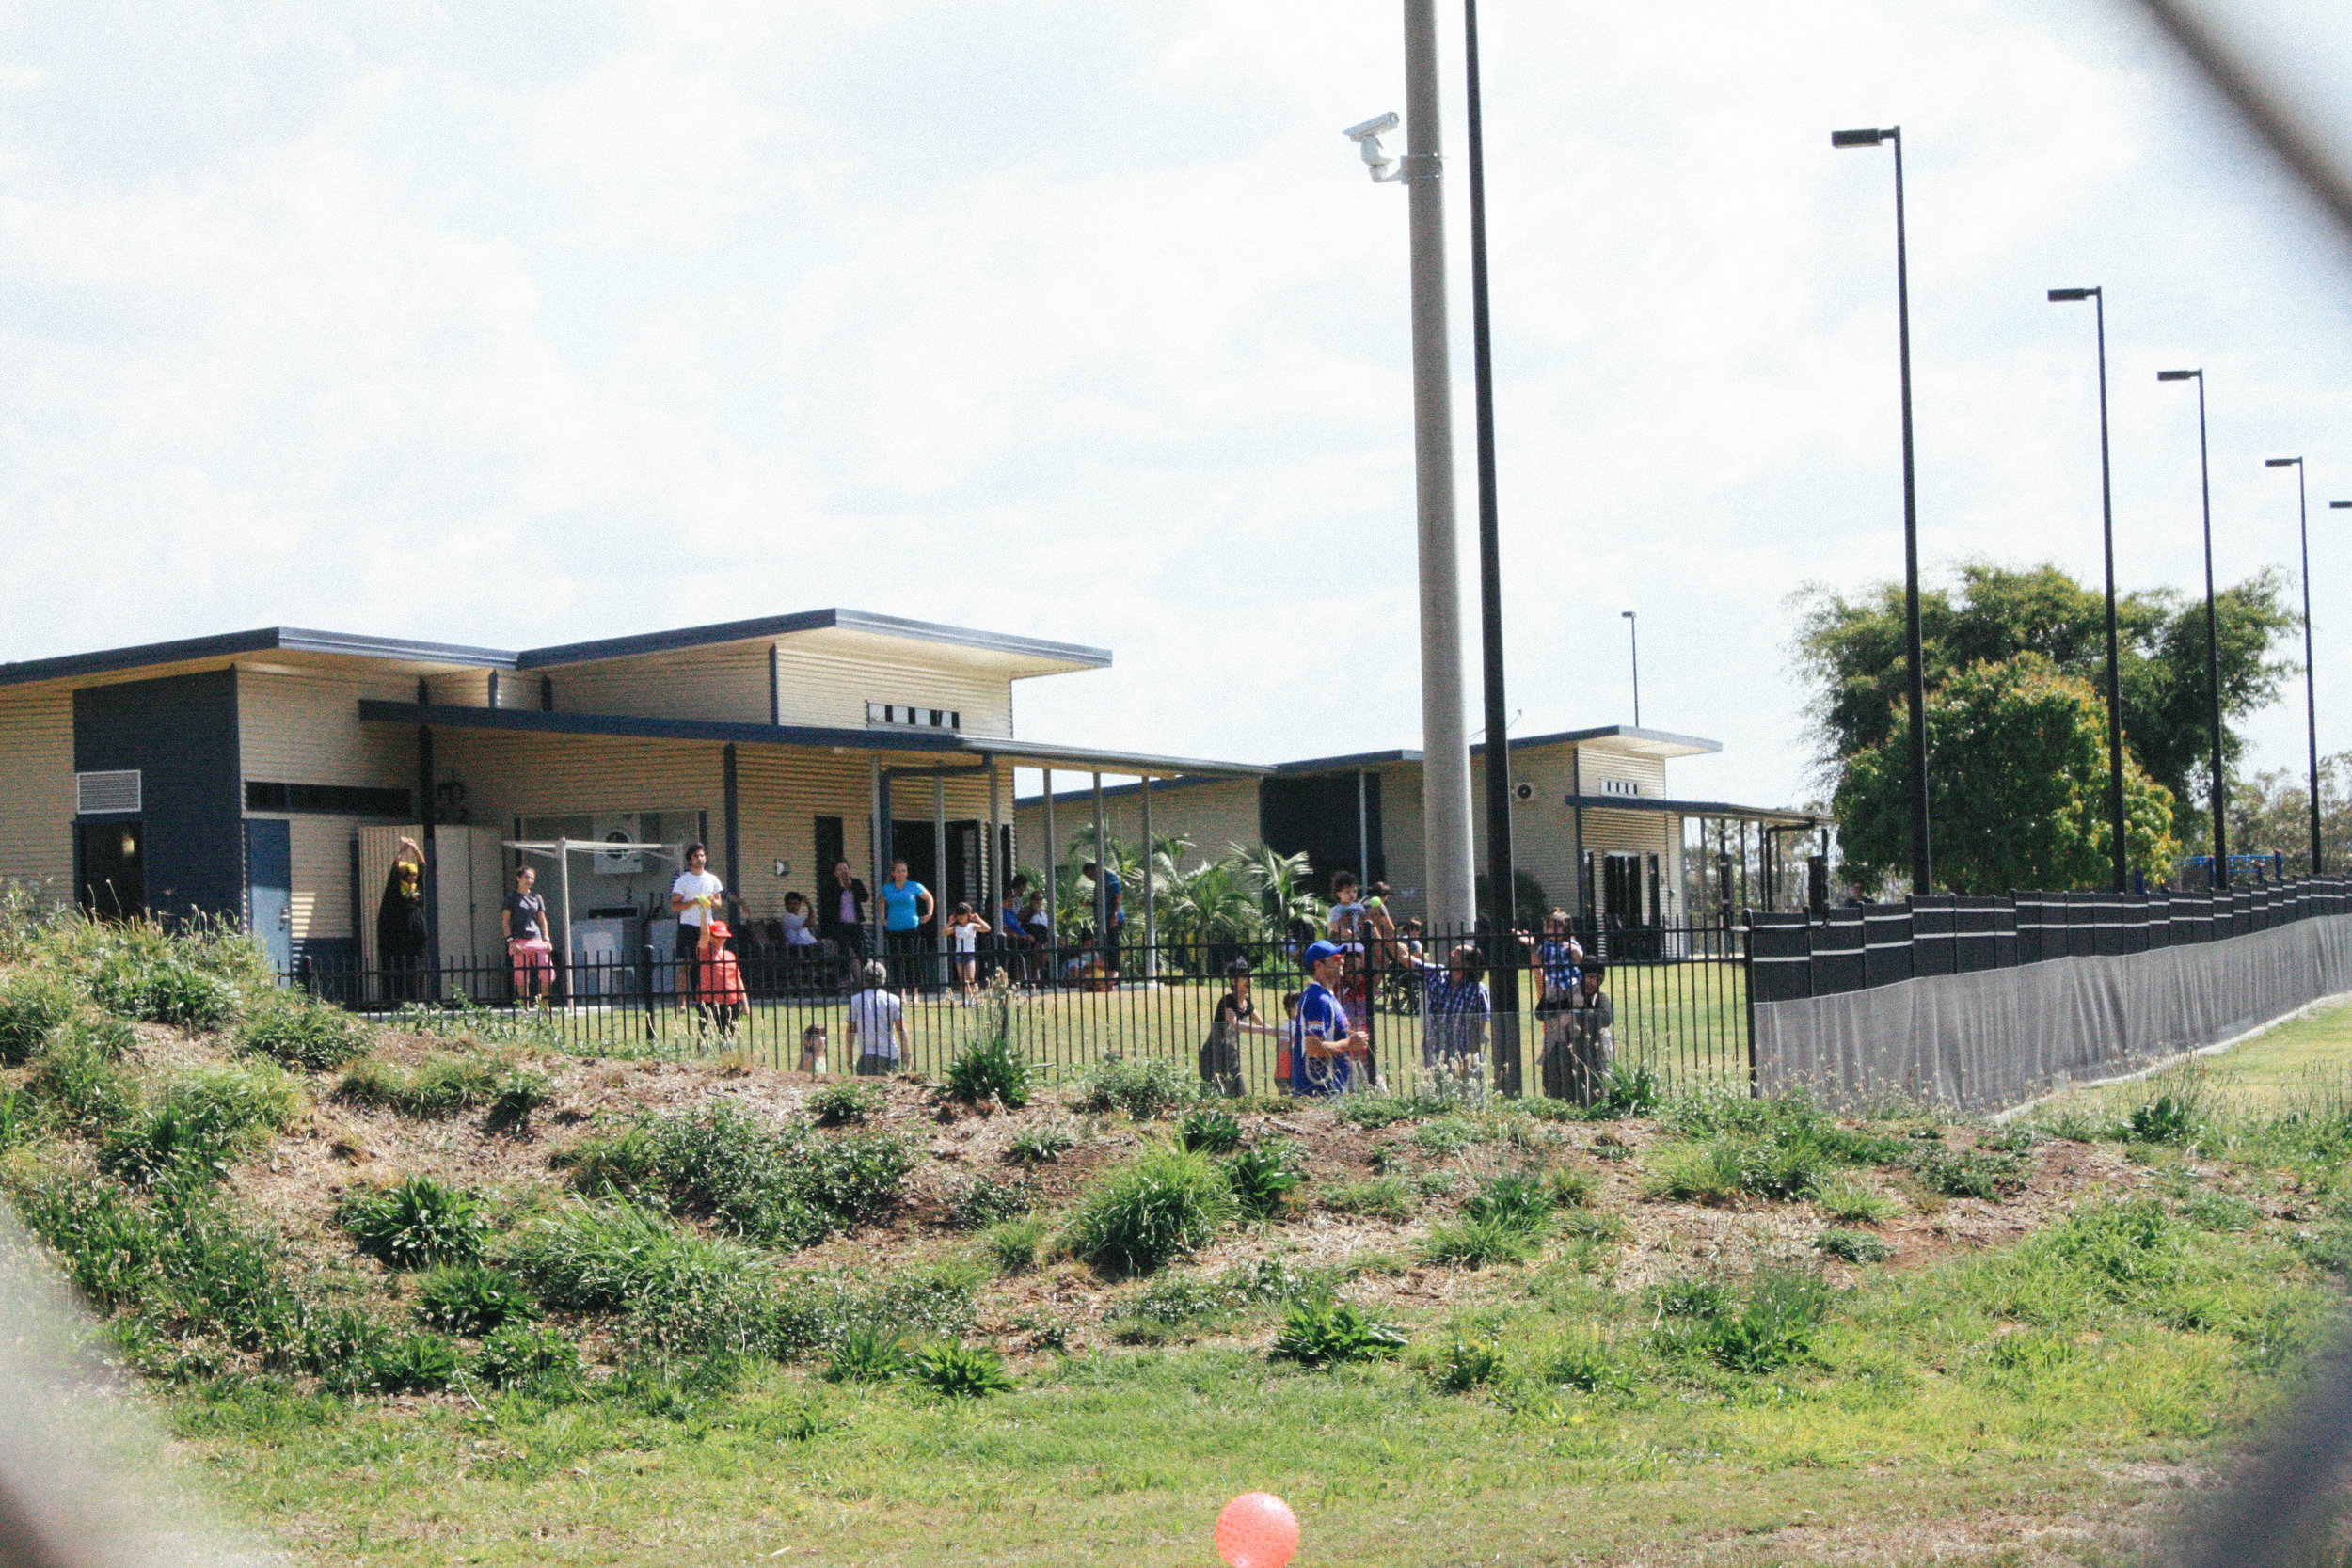 Lesly Lotha_Newzulu_Brisbane_Detention_Centre_Australia_04